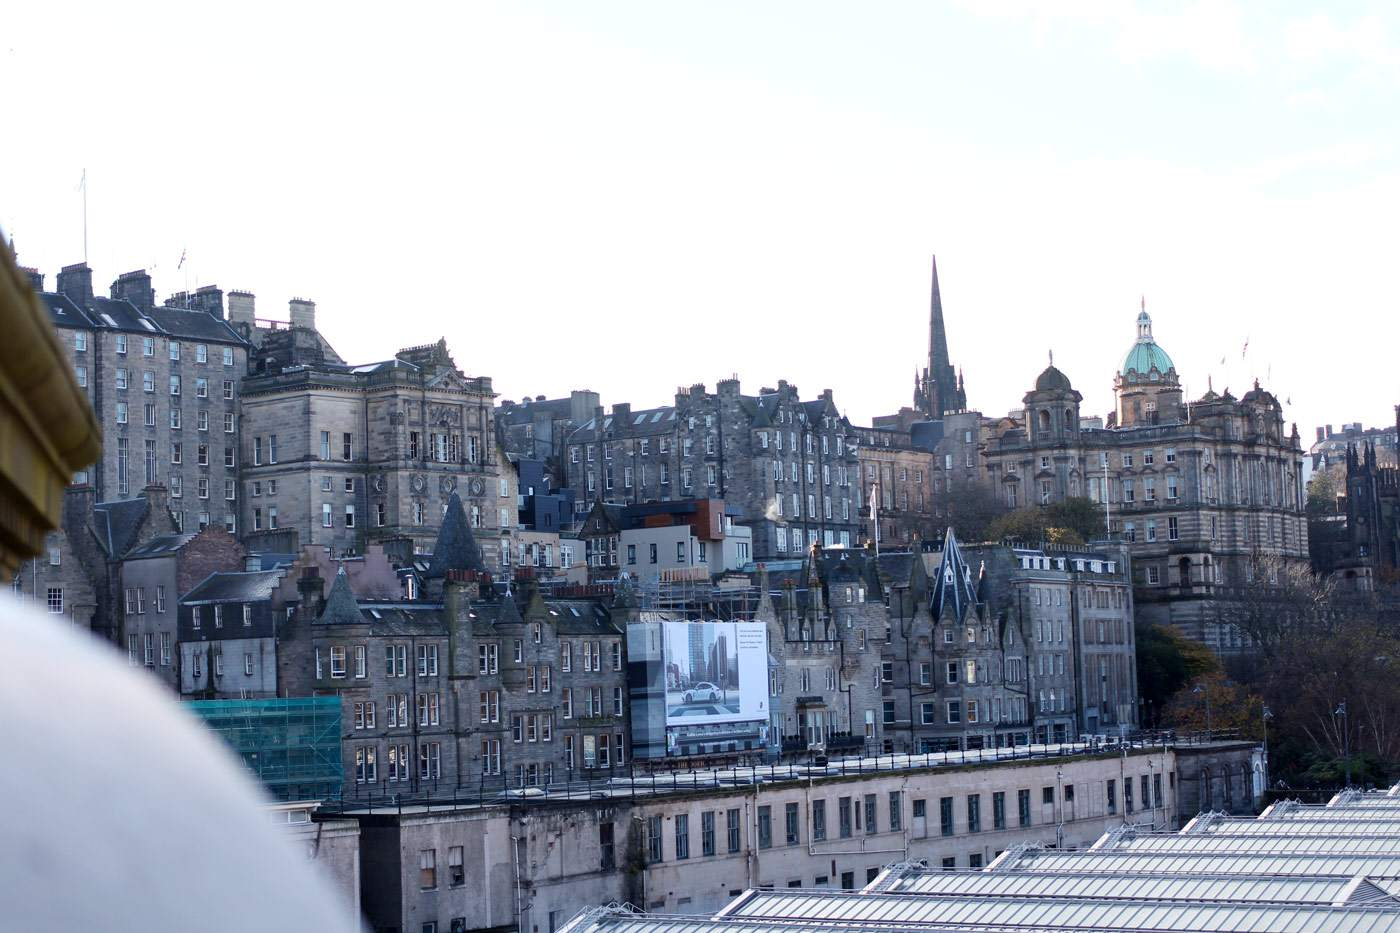 edinburgh-principal-george-st-hotel-12-hours-in-scotland-3